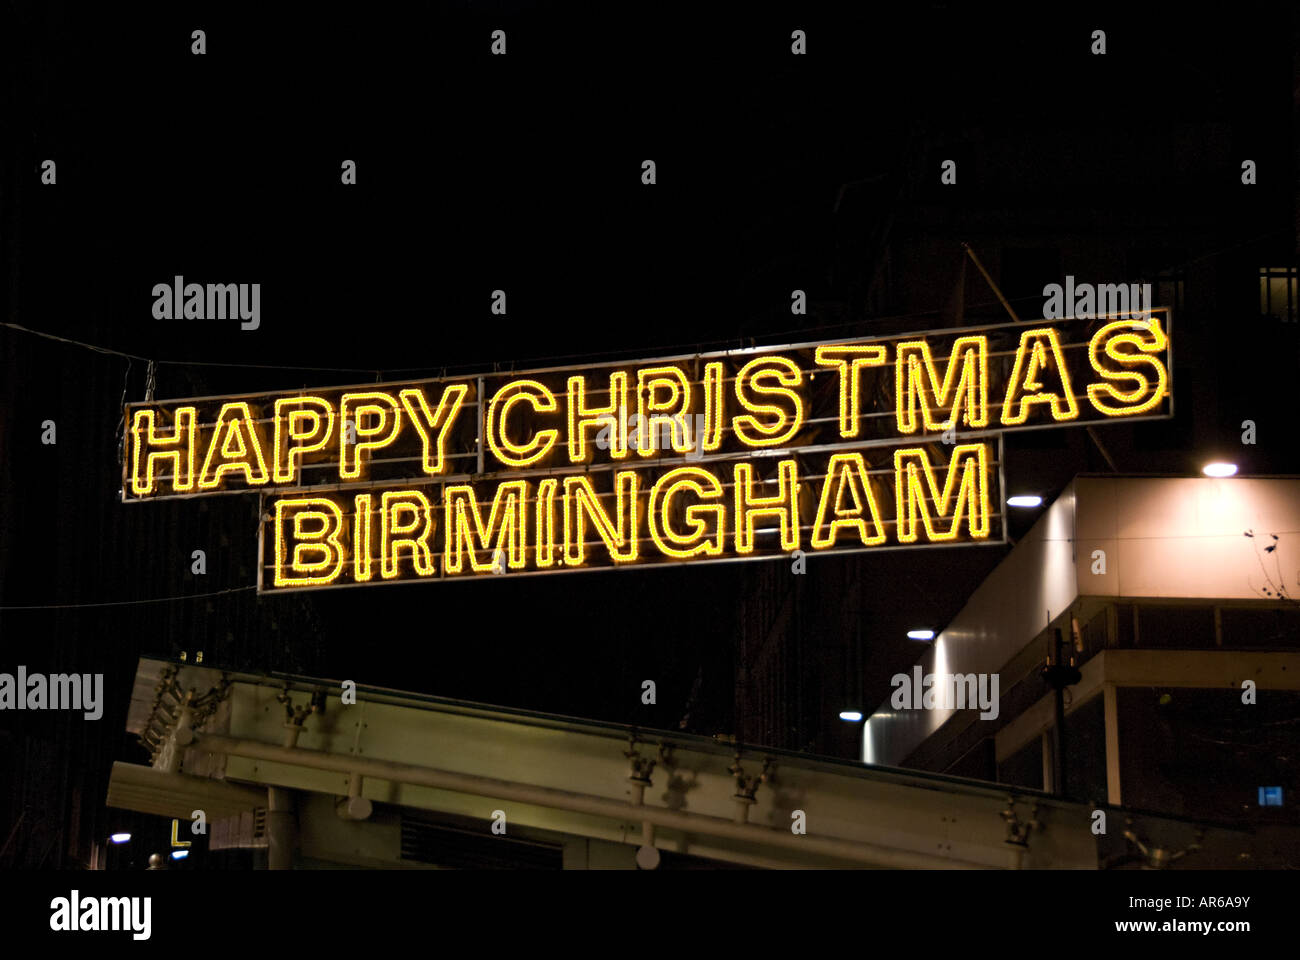 birmingham city center german markets in 2007 happy christmas sign